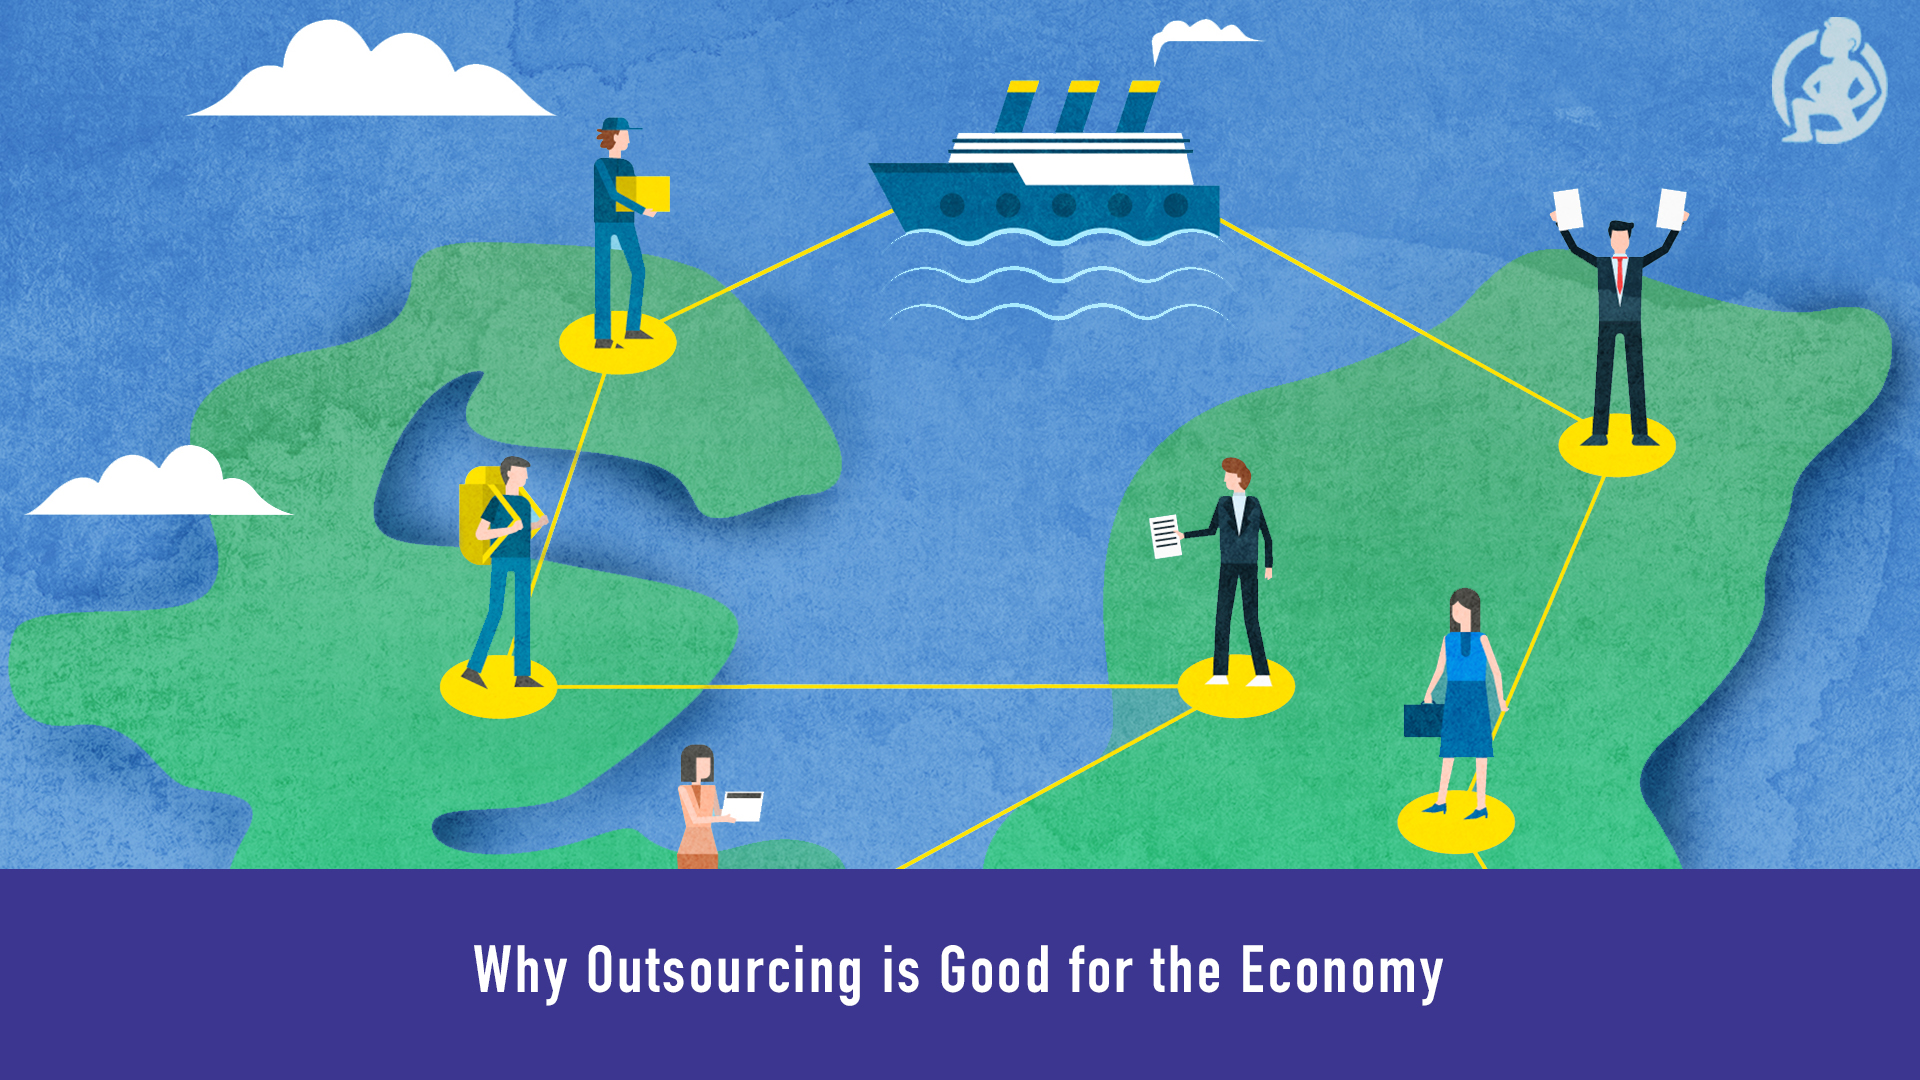 Why Outsourcing is Good for the Economy